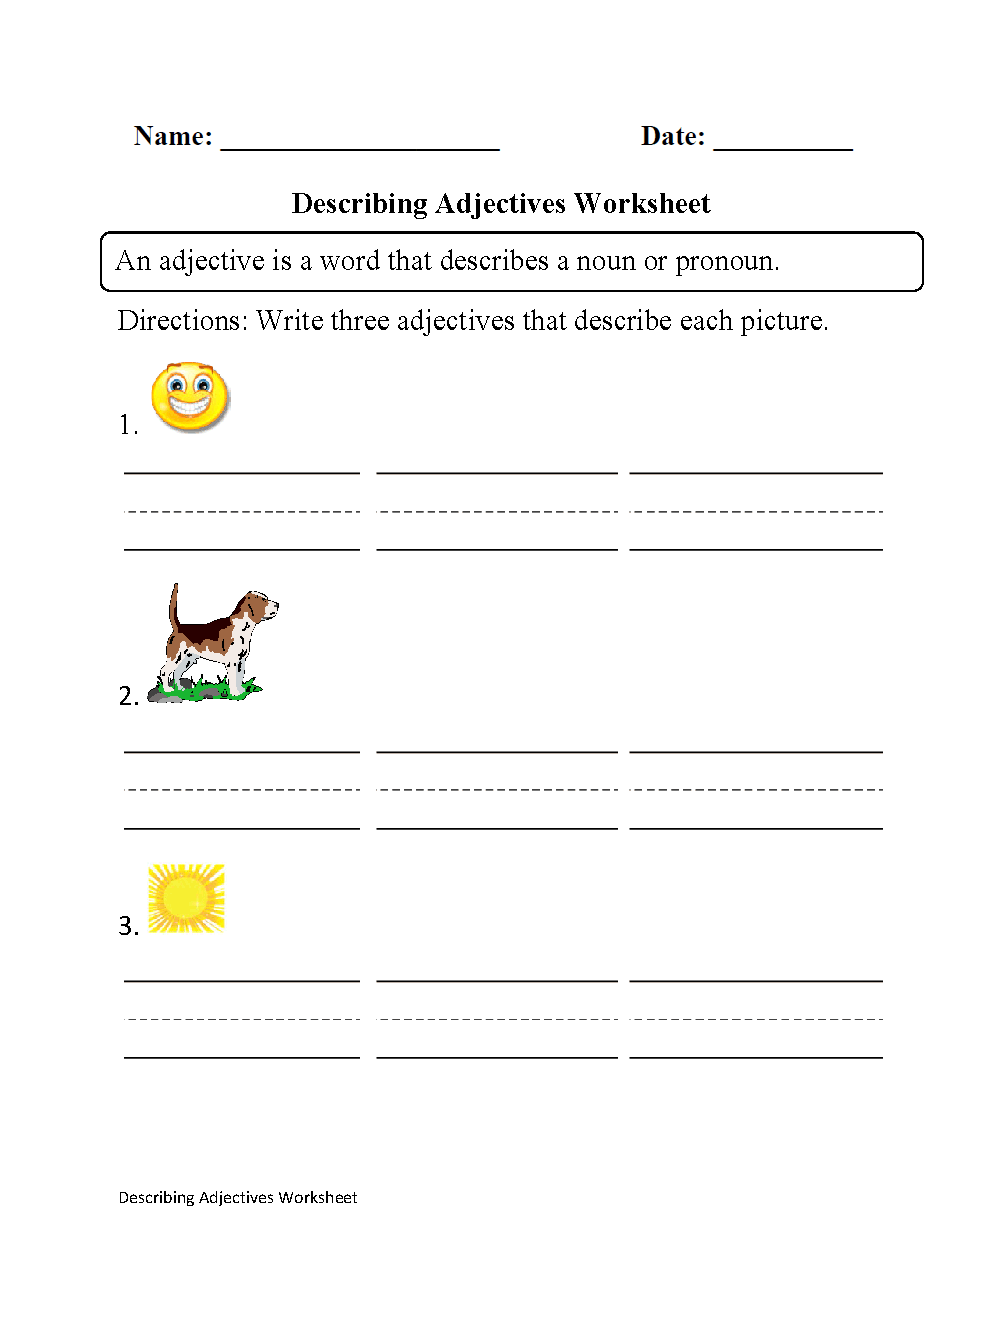 Adjectives Worksheets | Regular Adjectives Worksheets